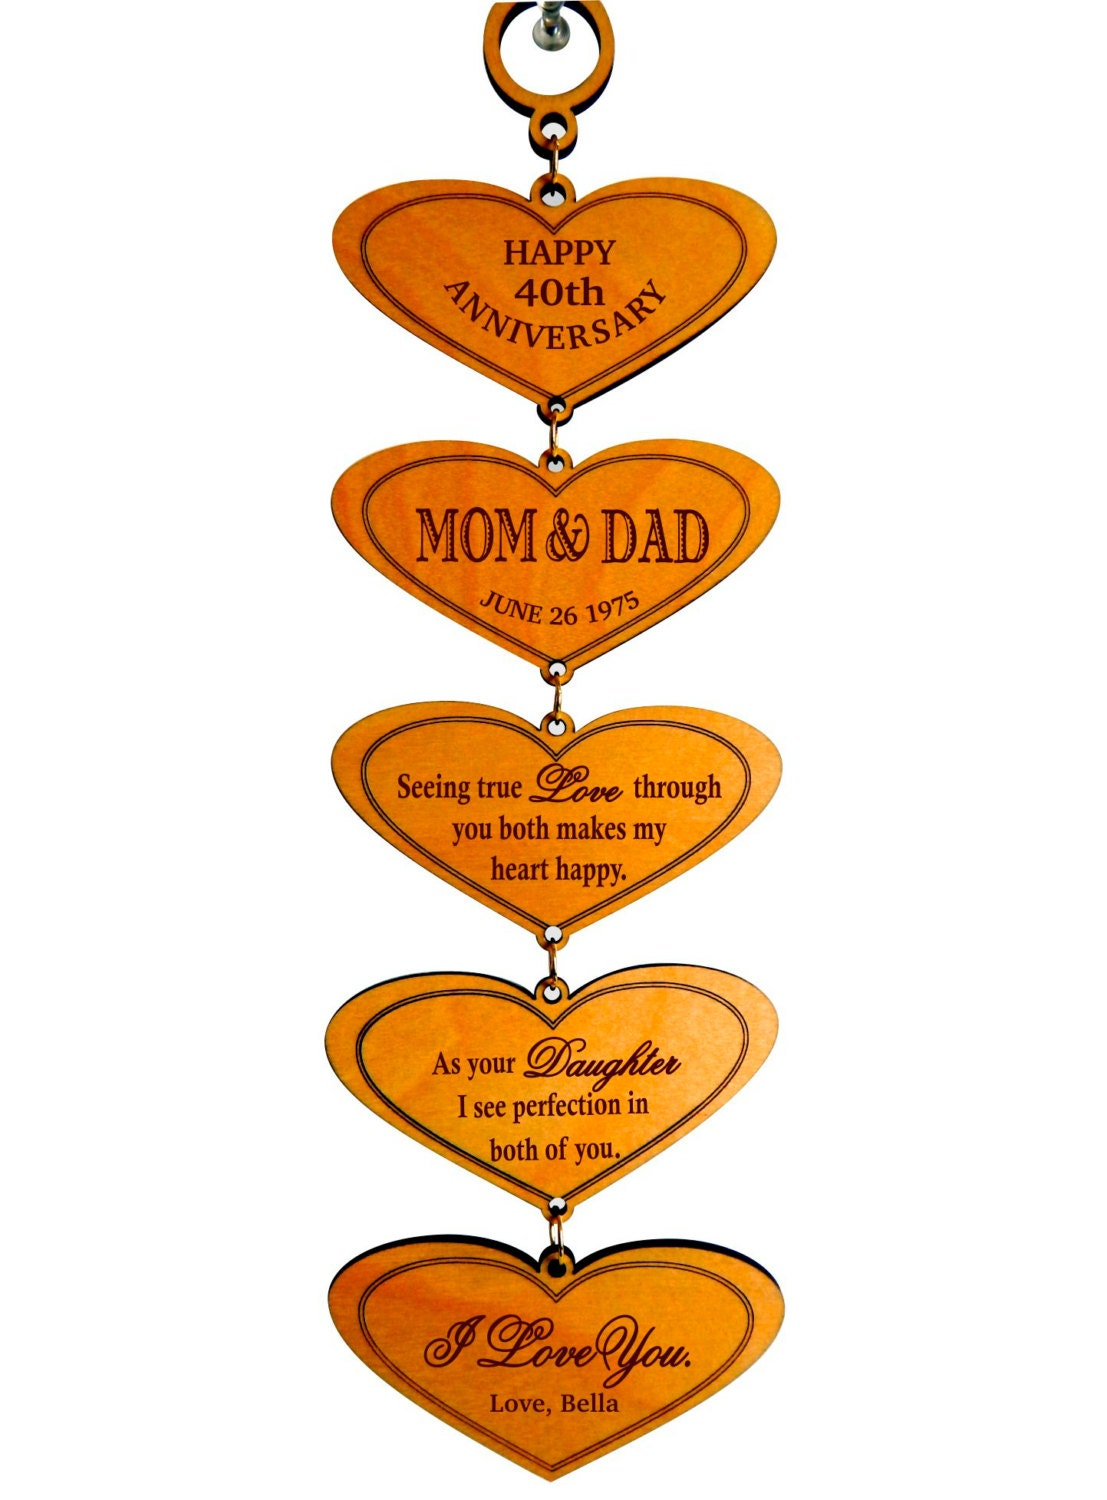 40th Wedding Anniversary Gift for Mom and Dad from